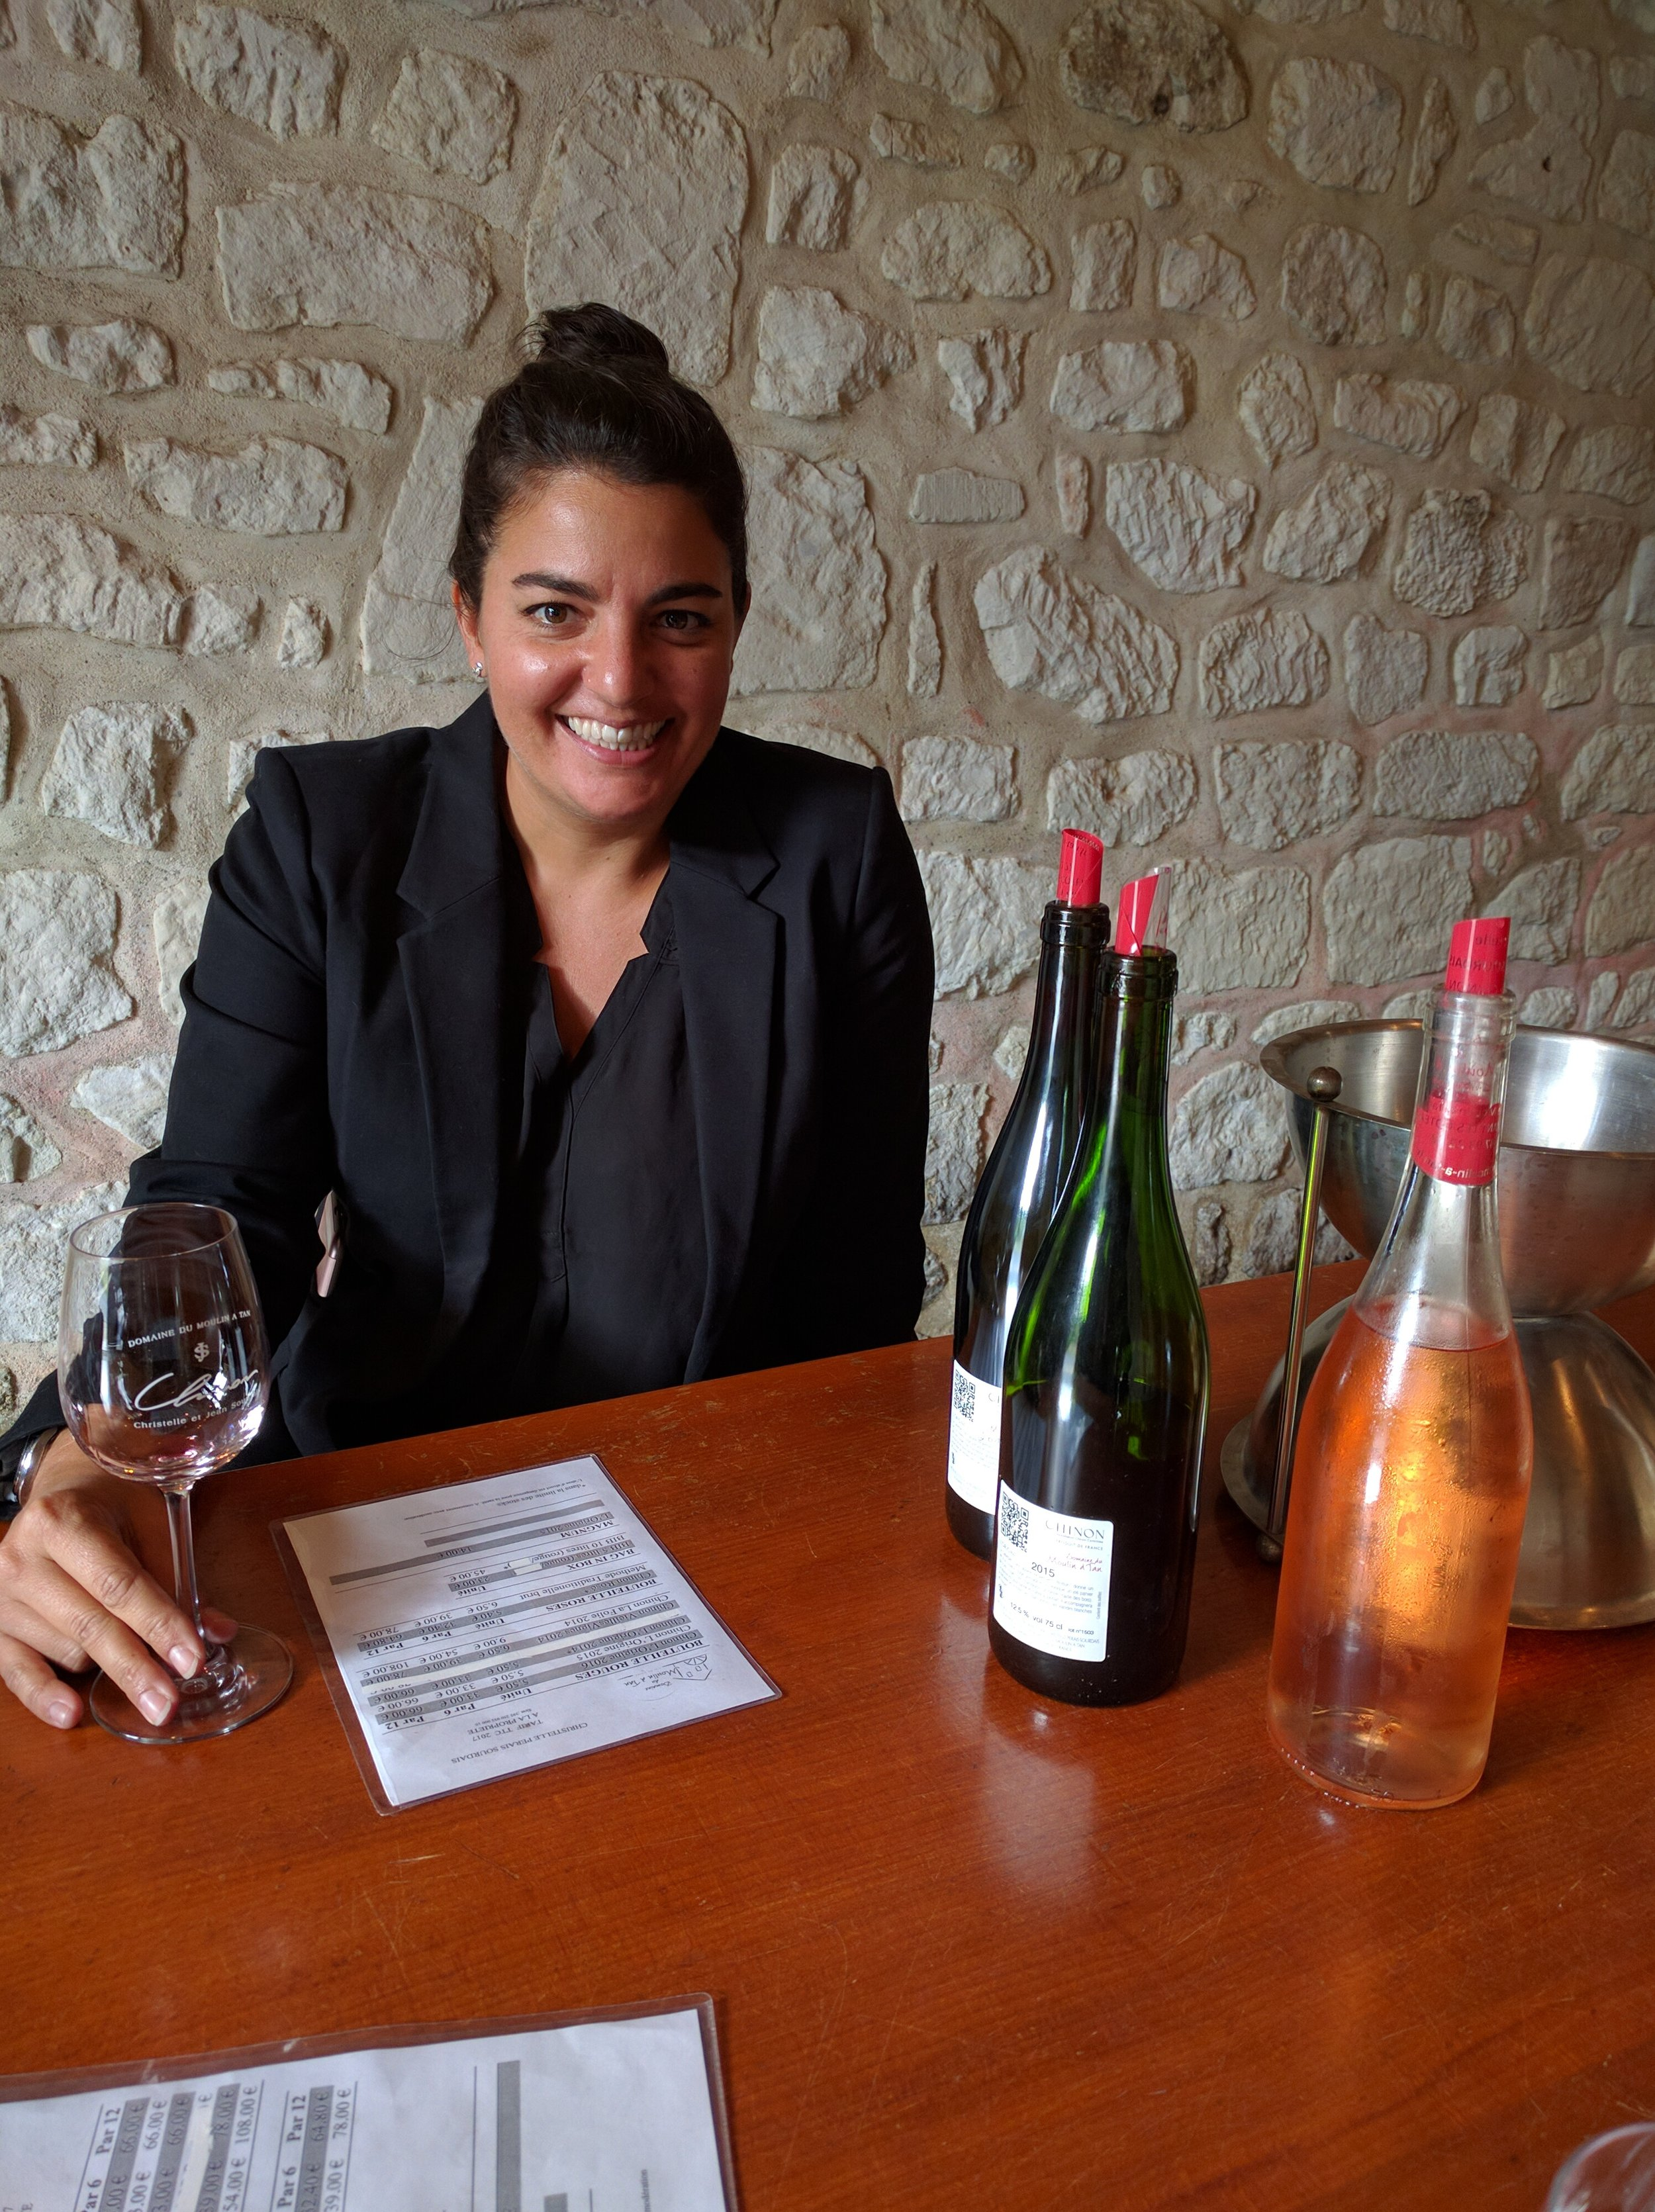 Tasting at Domaine Pierre Sourdais